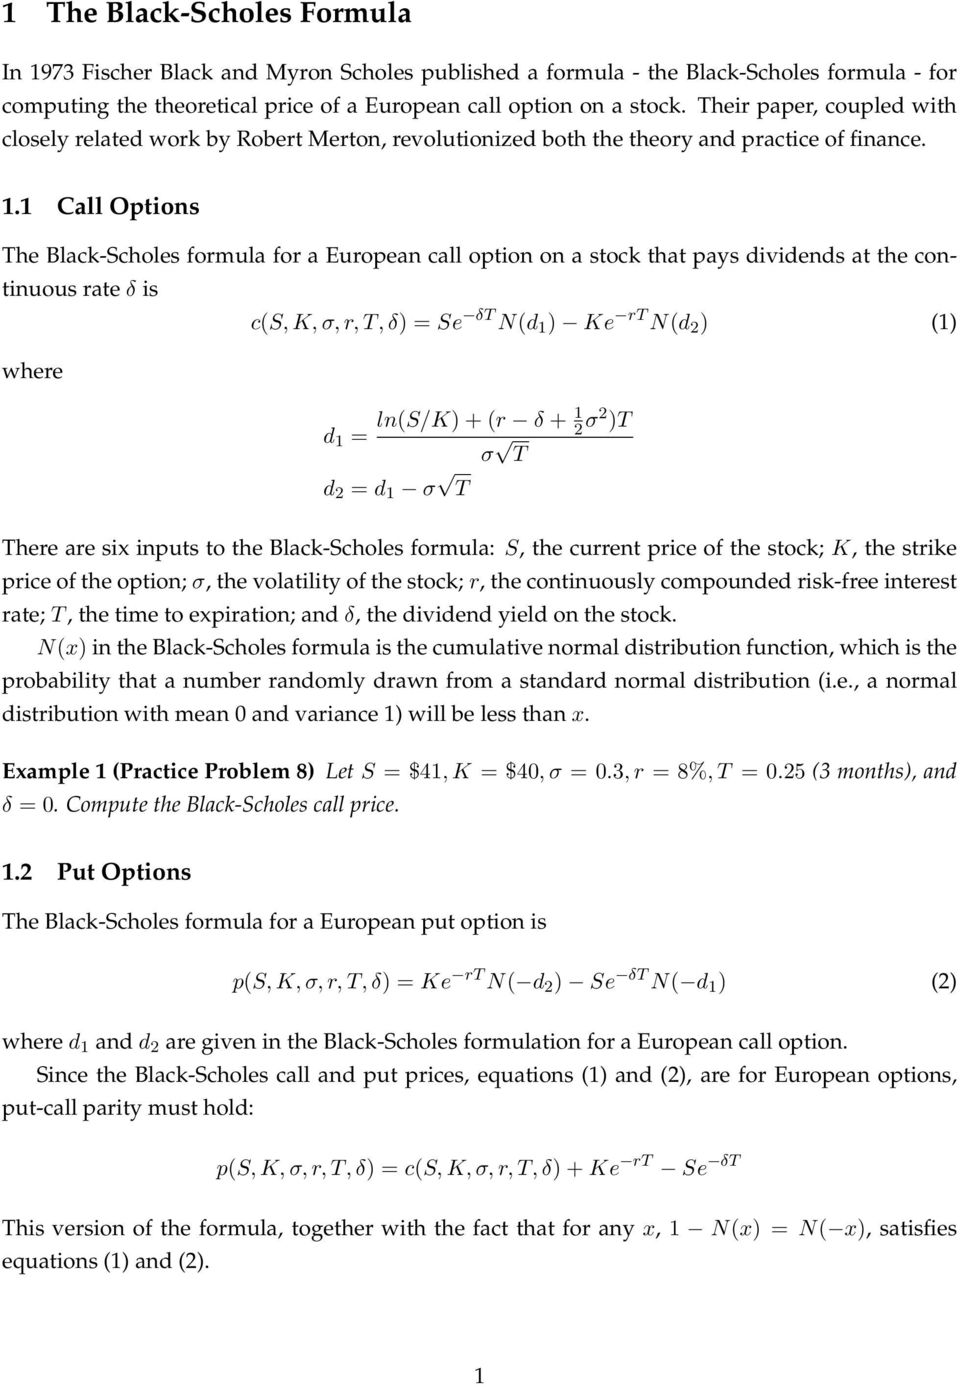 1 Call Options The Black-Scholes formula for a European call option on a stock that pays dividends at the continuous rate δ is where c(s, K, σ, r, T, δ = Se δt N(d 1 Ke rt N(d 2 (1 d 1 = ln(s/k + (r